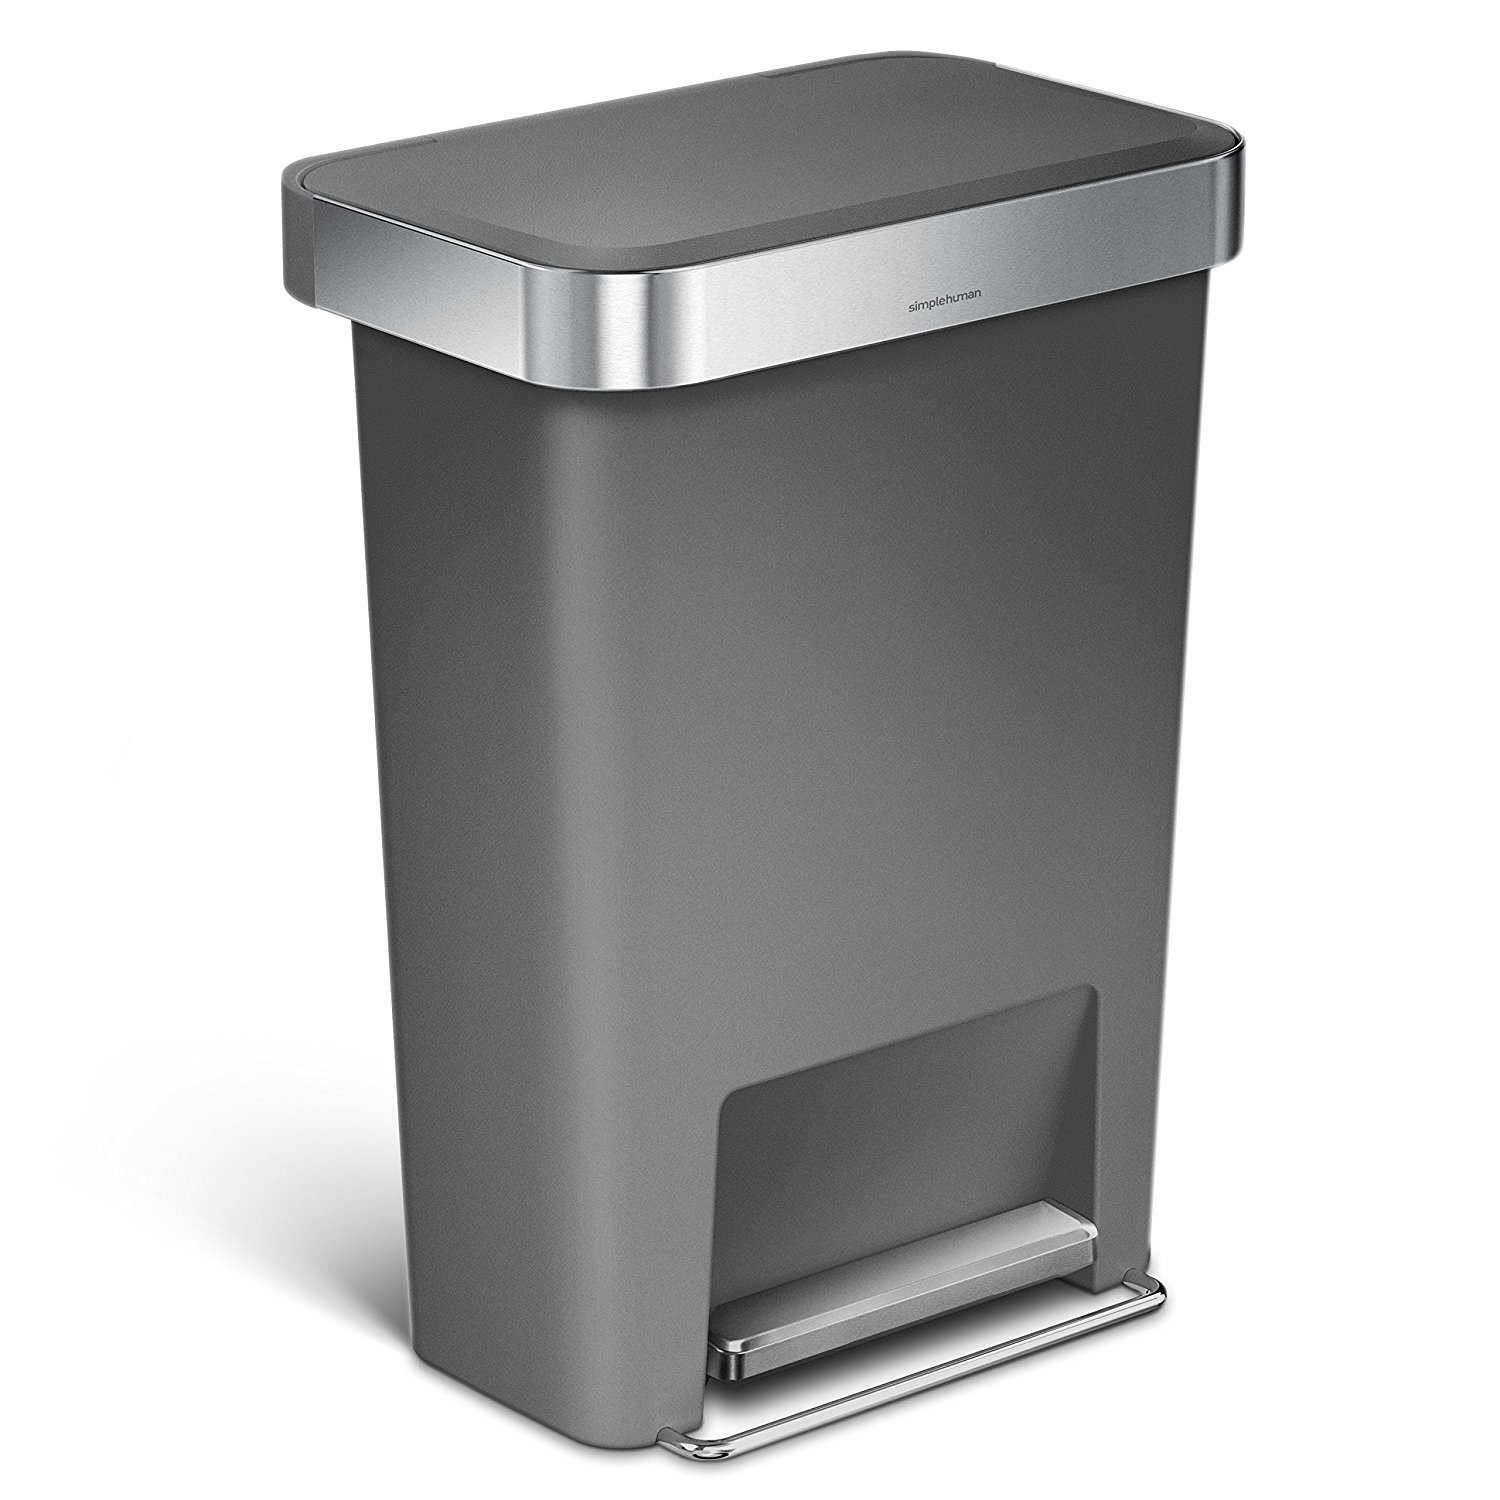 simplehuman 45 Liter / 12 Gallon Rectangular Kitchen Step Trash Can with Liner Pocket, Black Plastic with Stainless Steel Liner Rim and Step Pedal CW1385